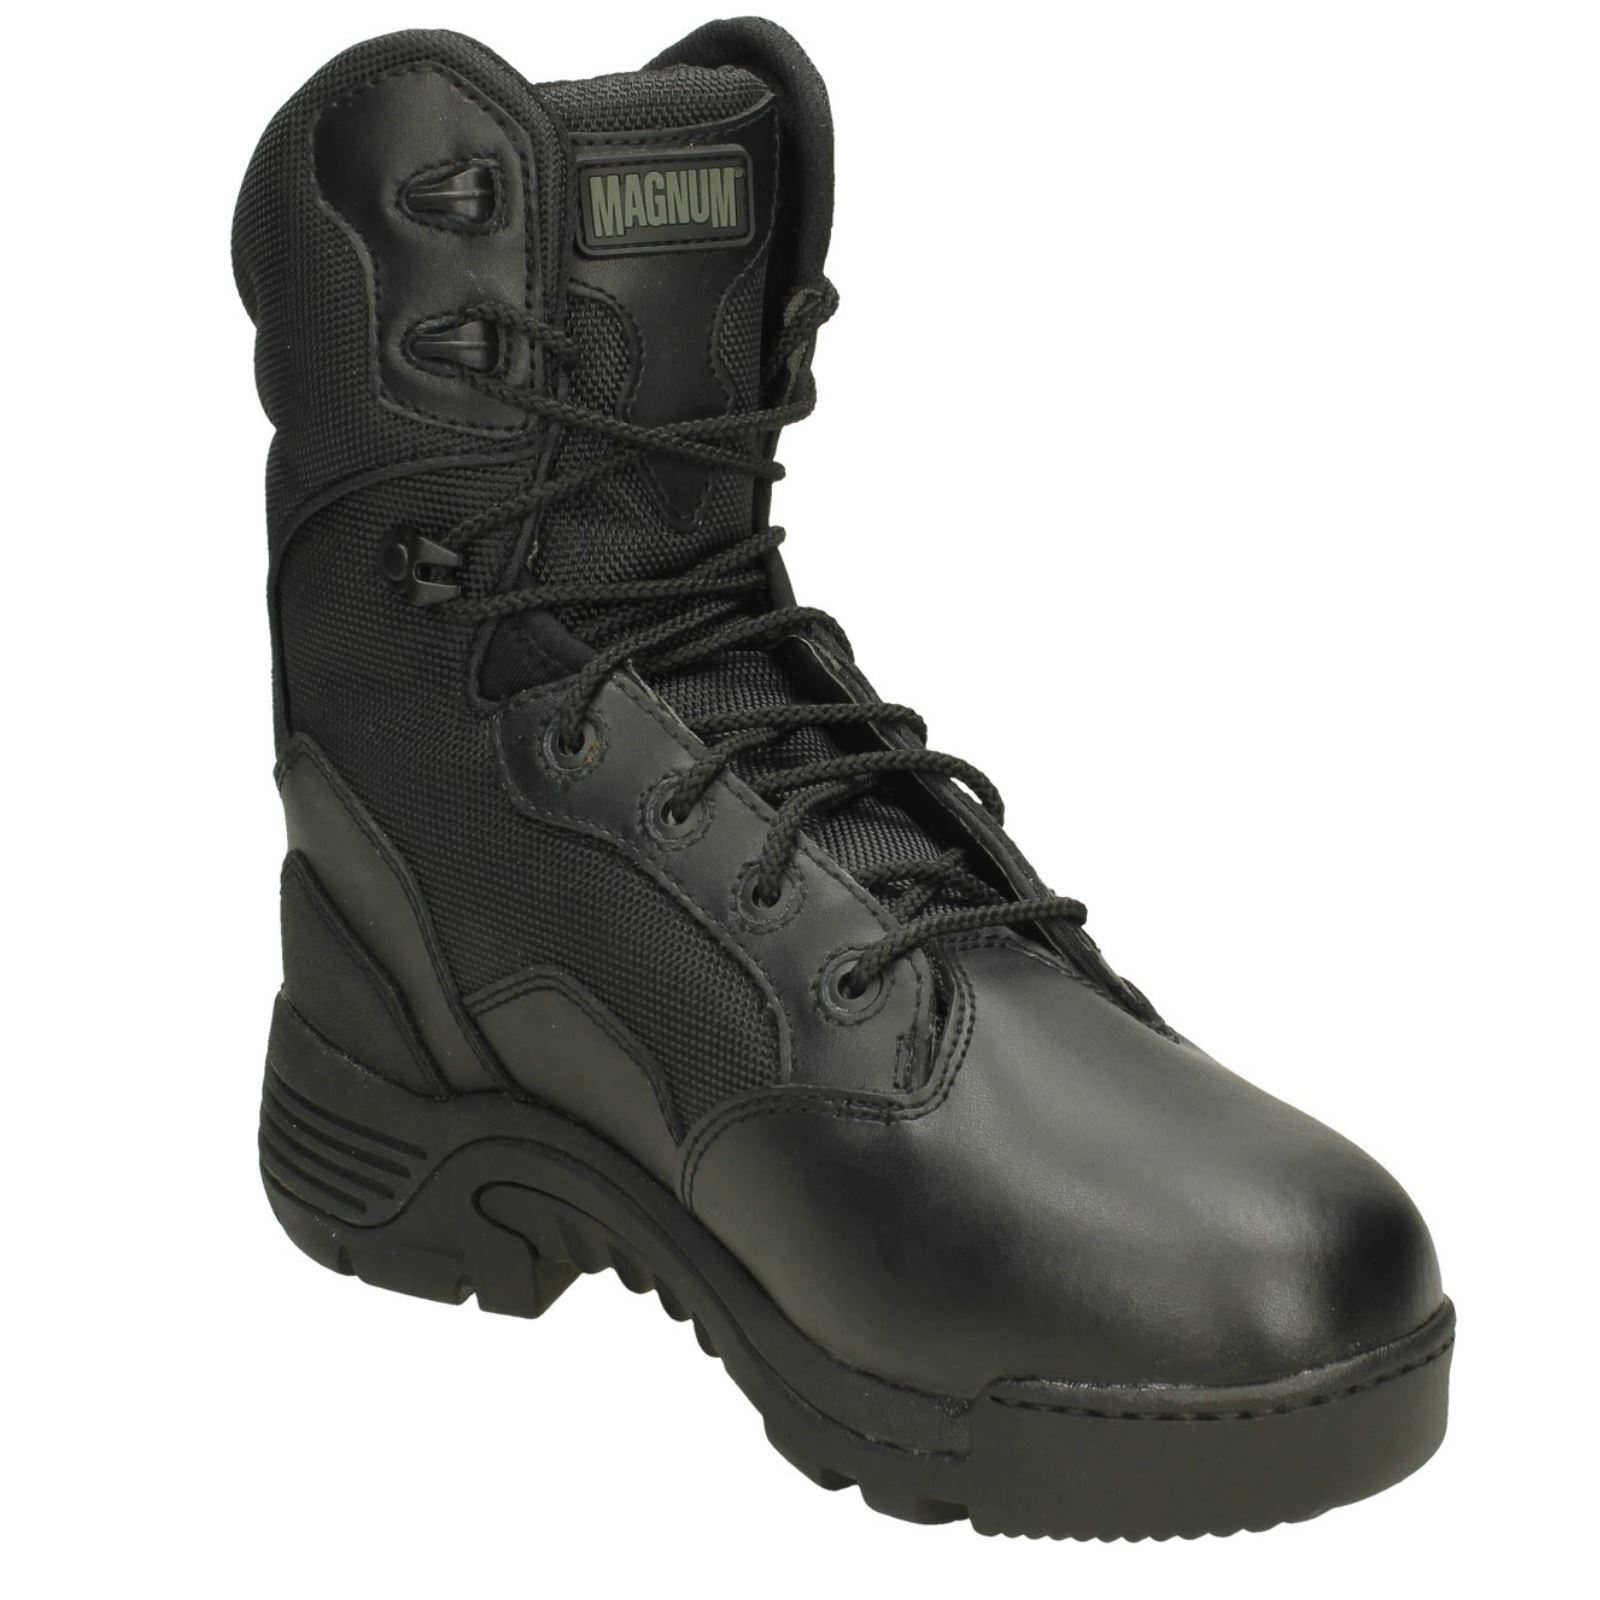 Mens-Magnum-Waterproof-Insulated-Boots-039-Strike-Force-II-039 thumbnail 8